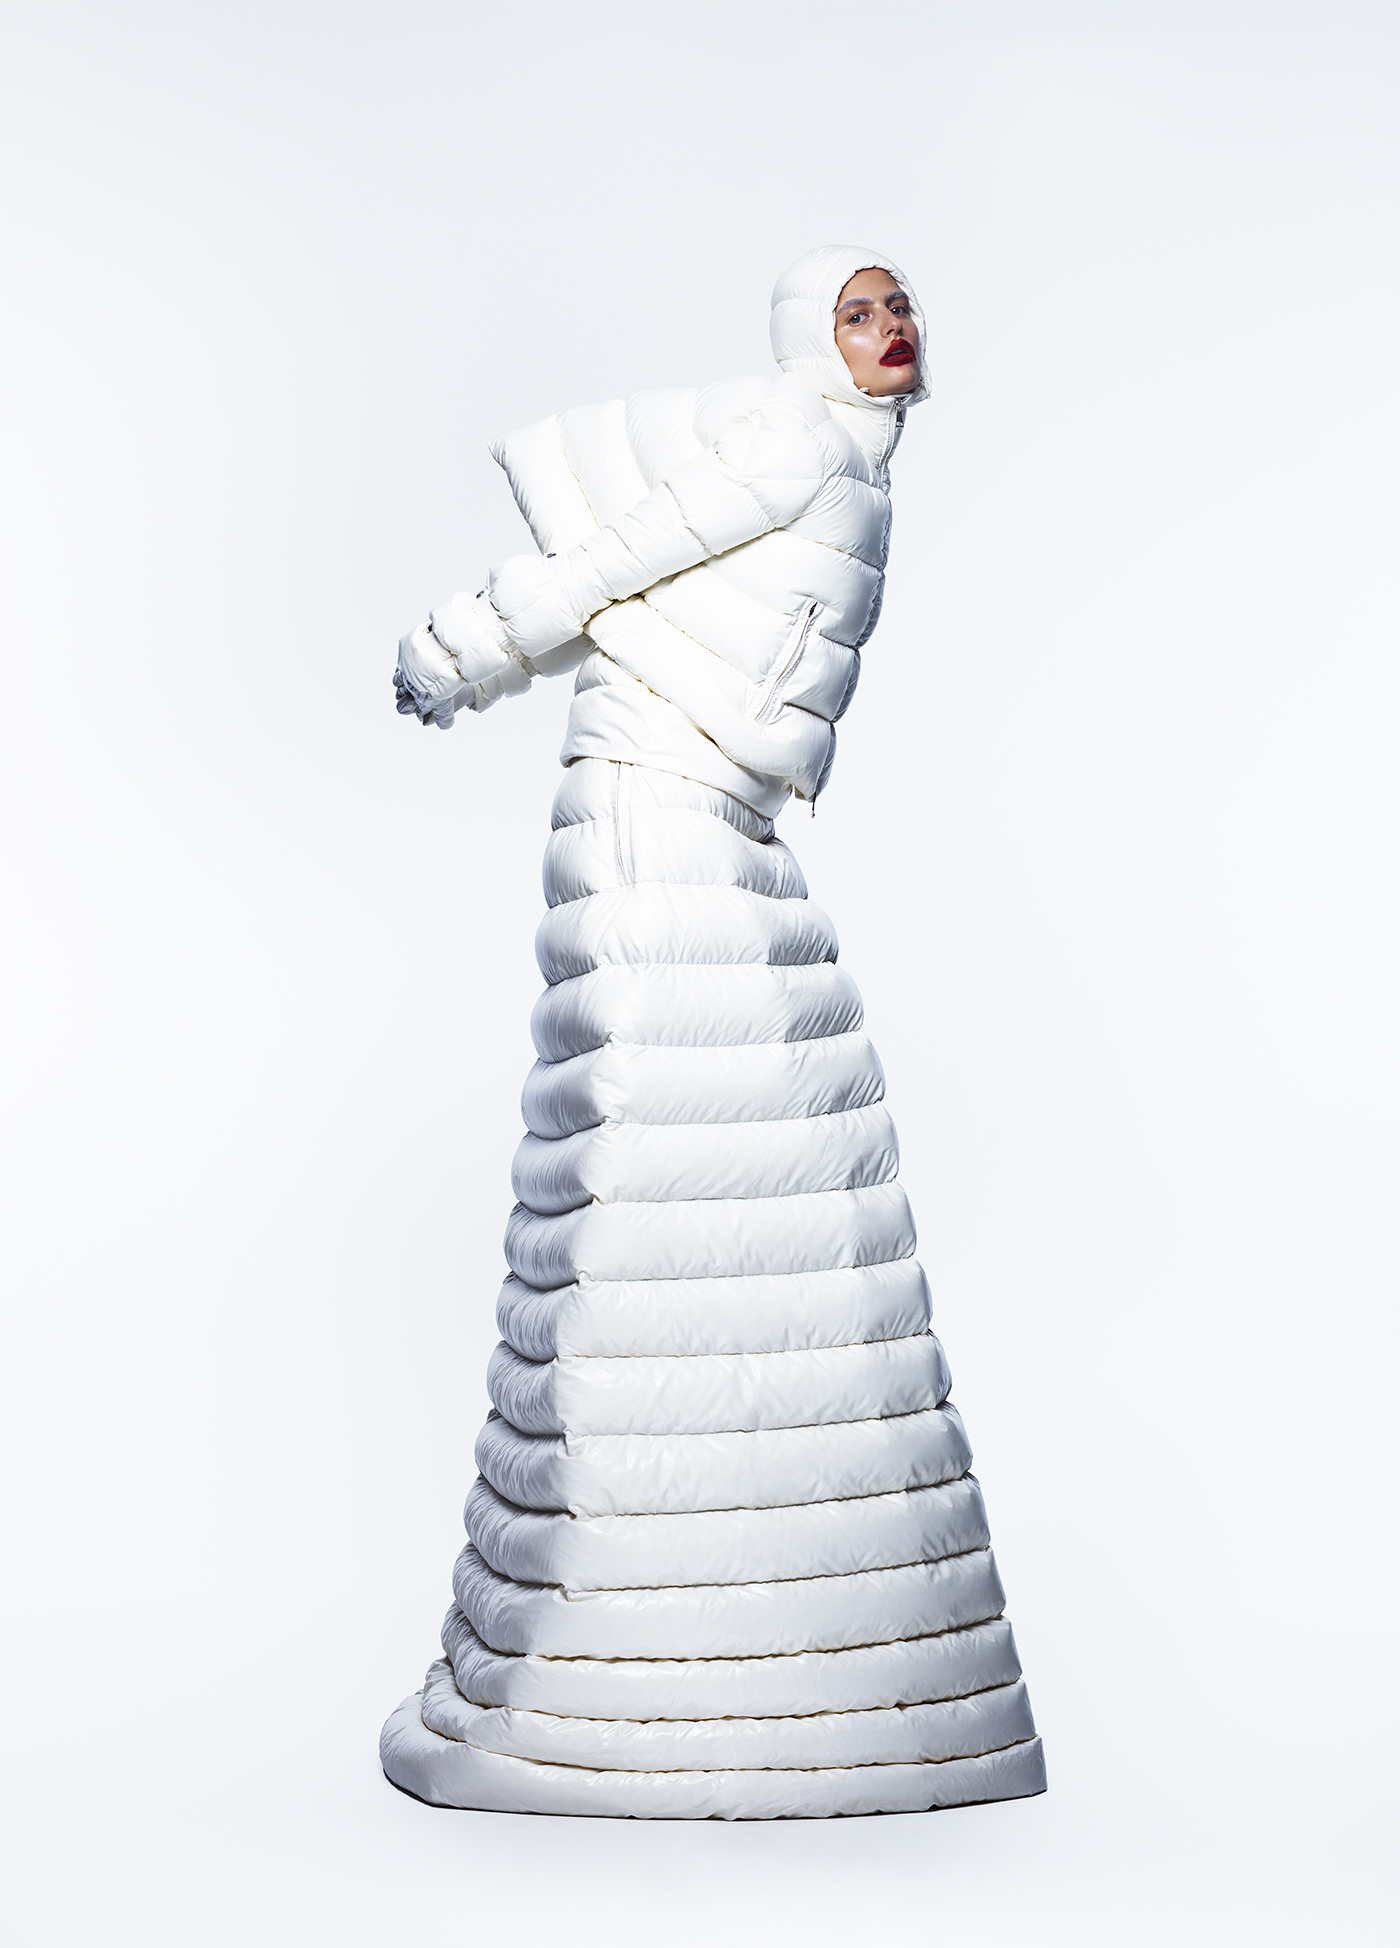 All clothing by Moncler 1 Pierpaolo Piccioli.